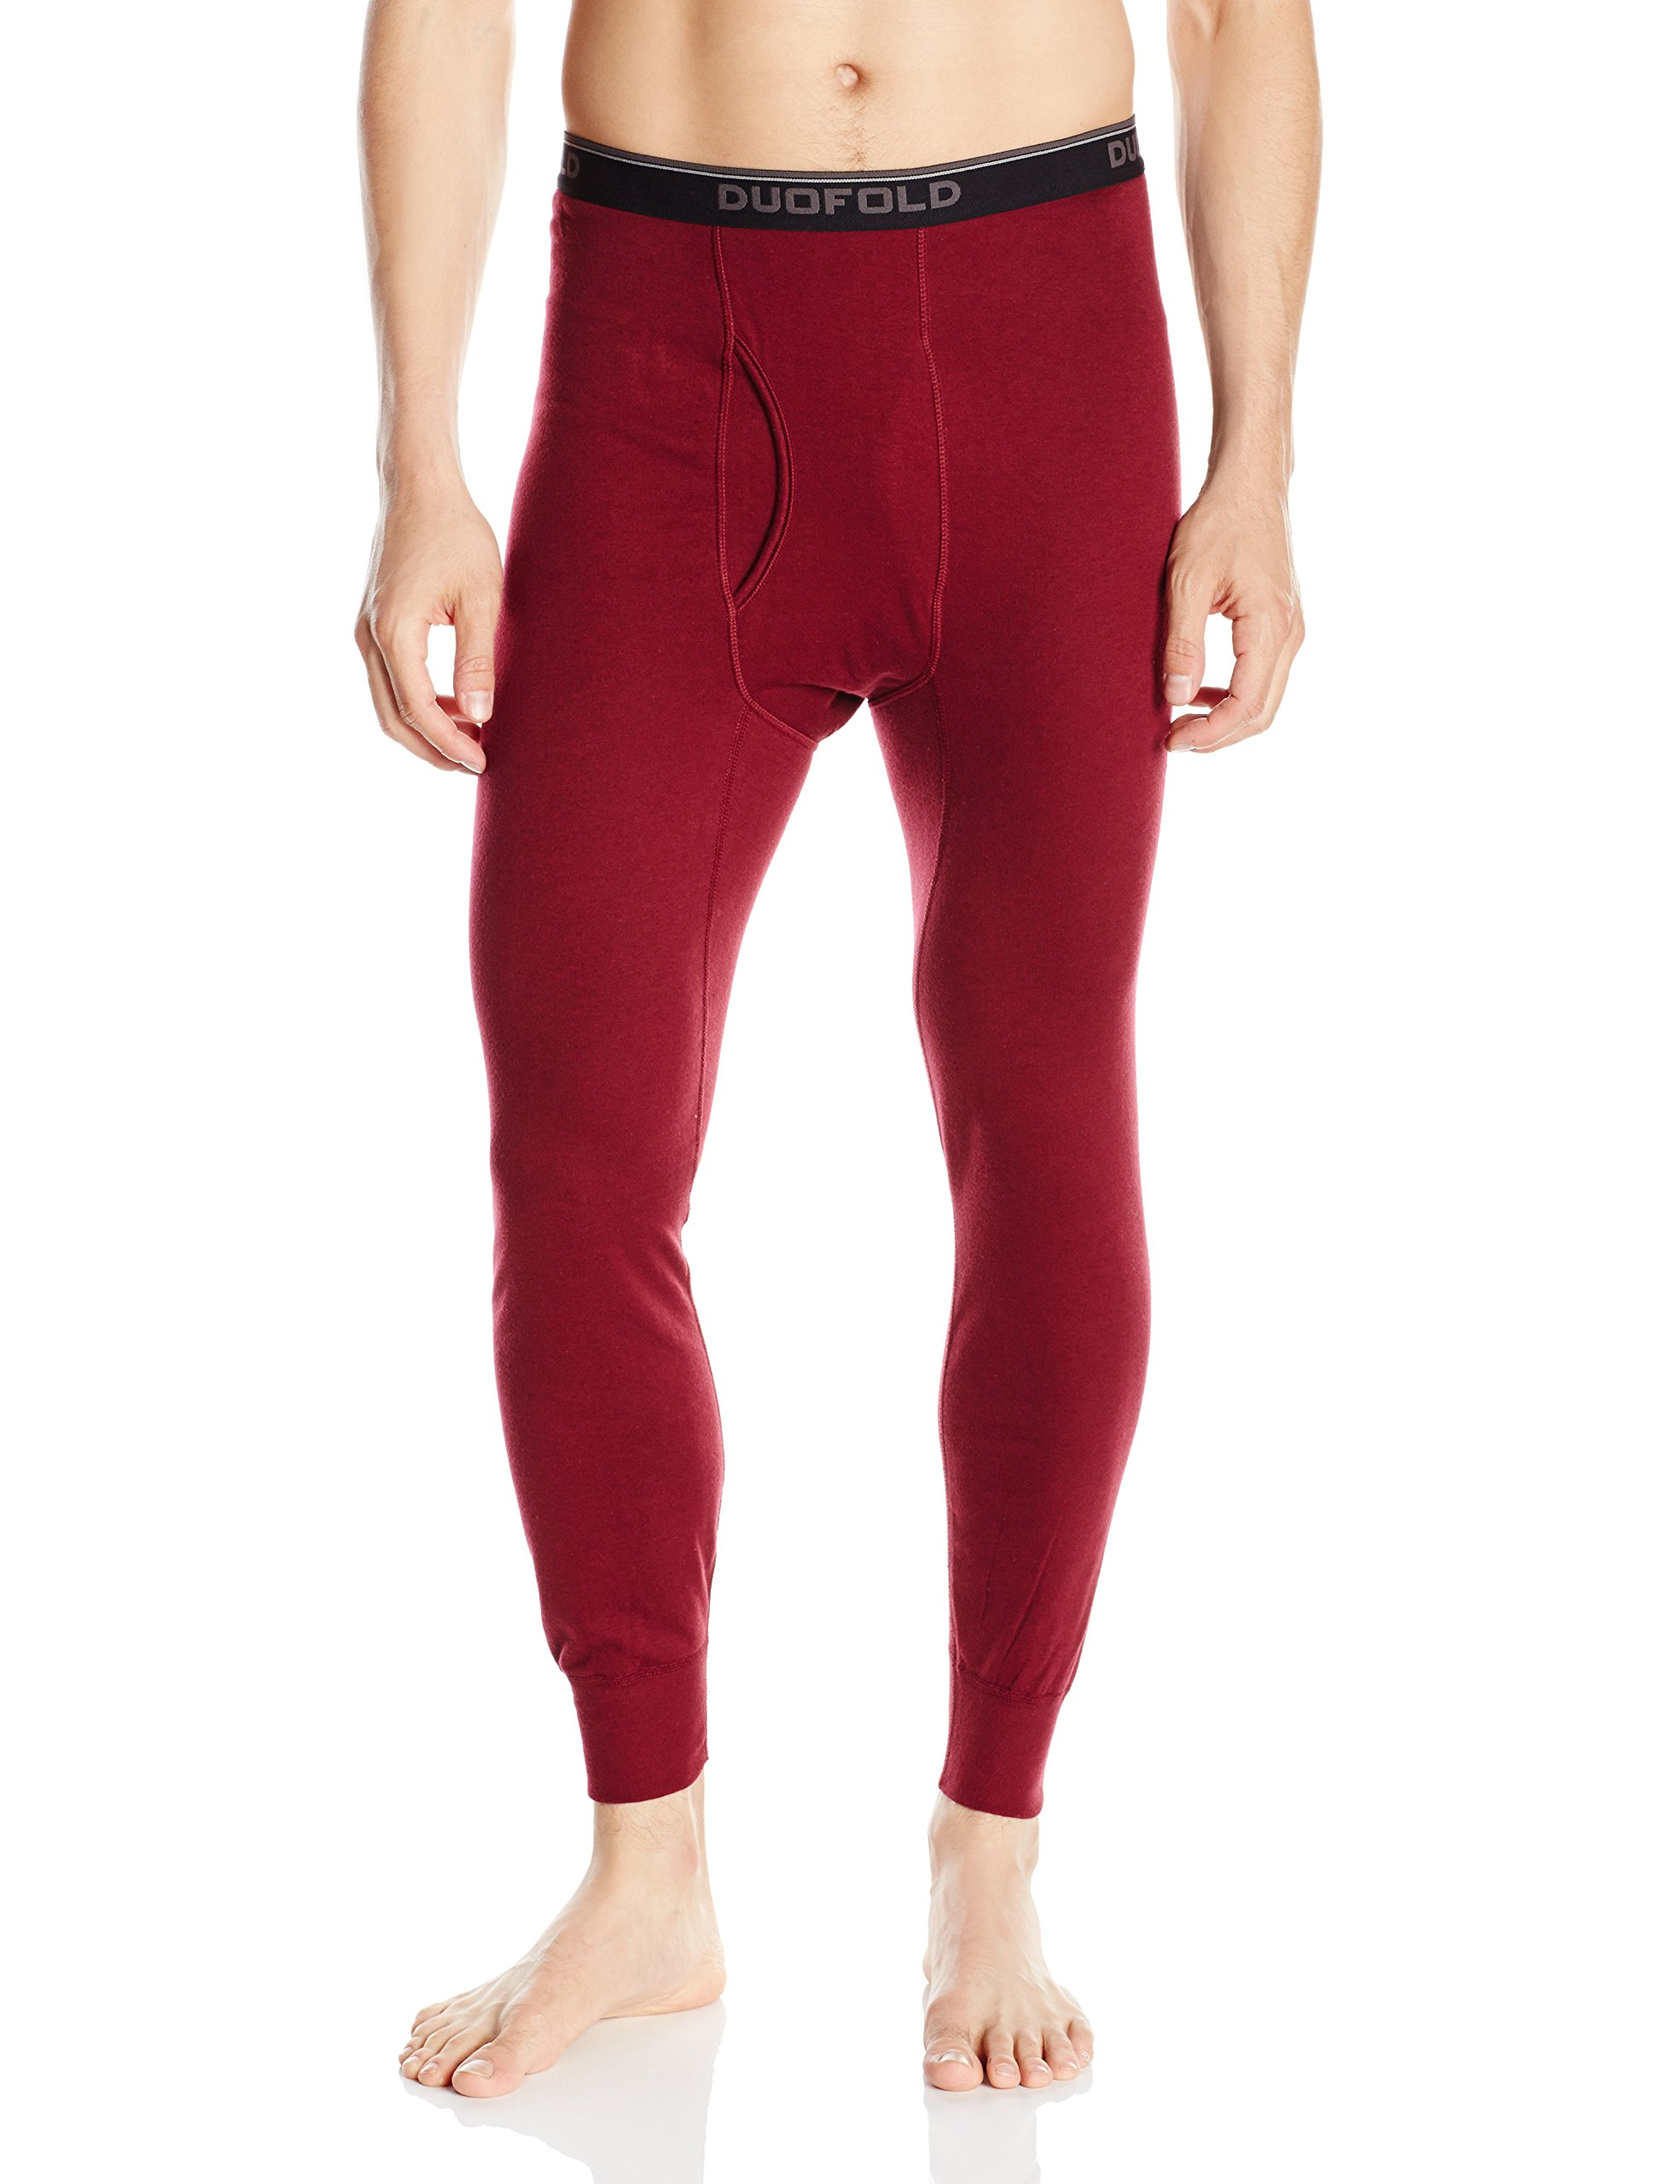 Duofold Men's Mid Weight Wicking Thermal Pant, Bordeaux Red, X-Large by Duofold